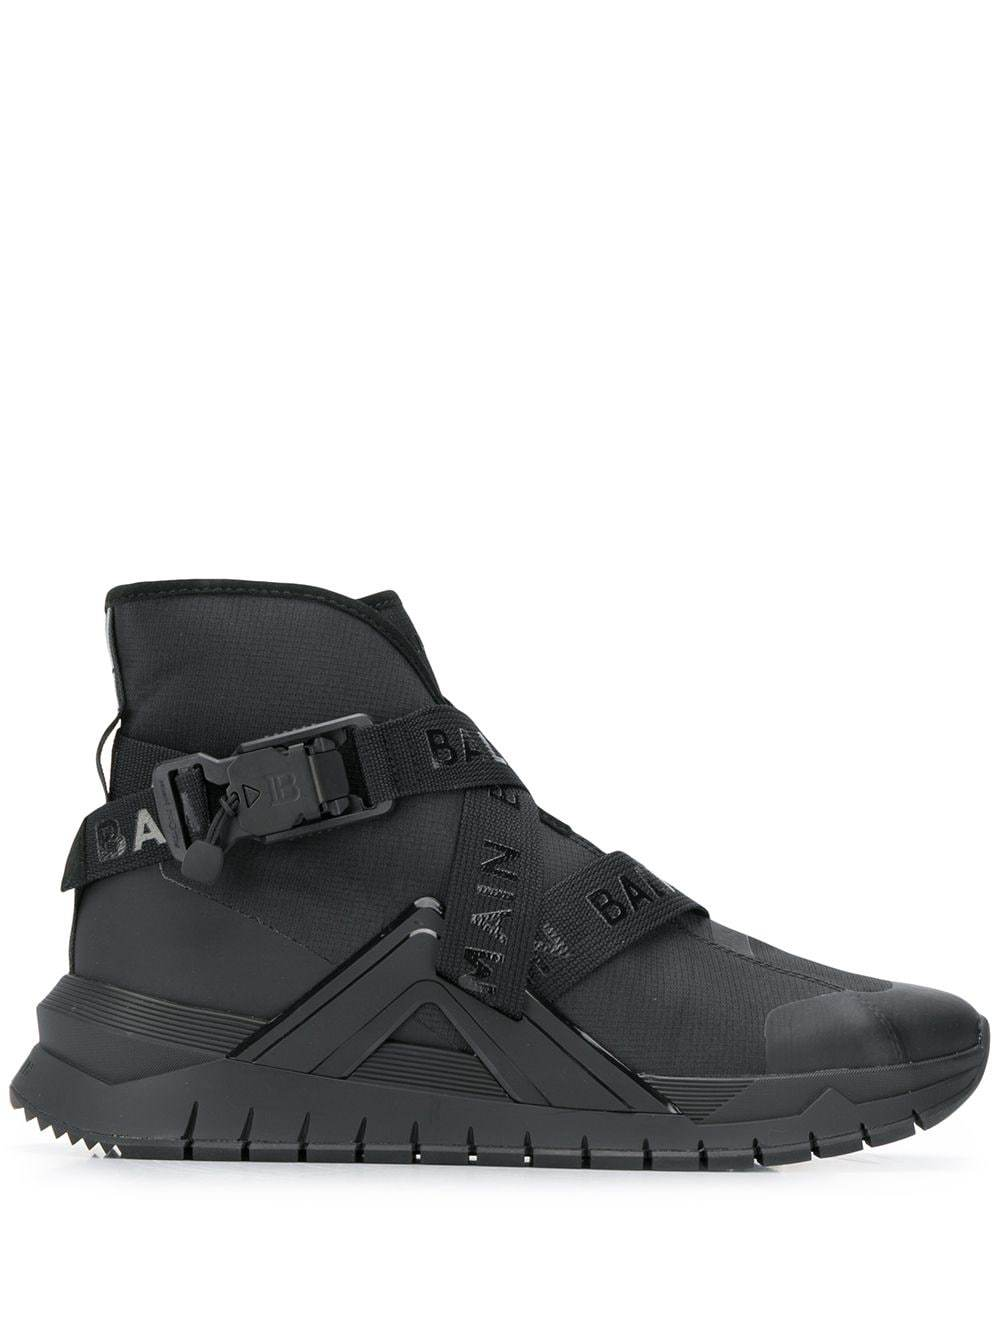 BALMAIN B-Troop High Top Sneakers Black - Maison De Fashion